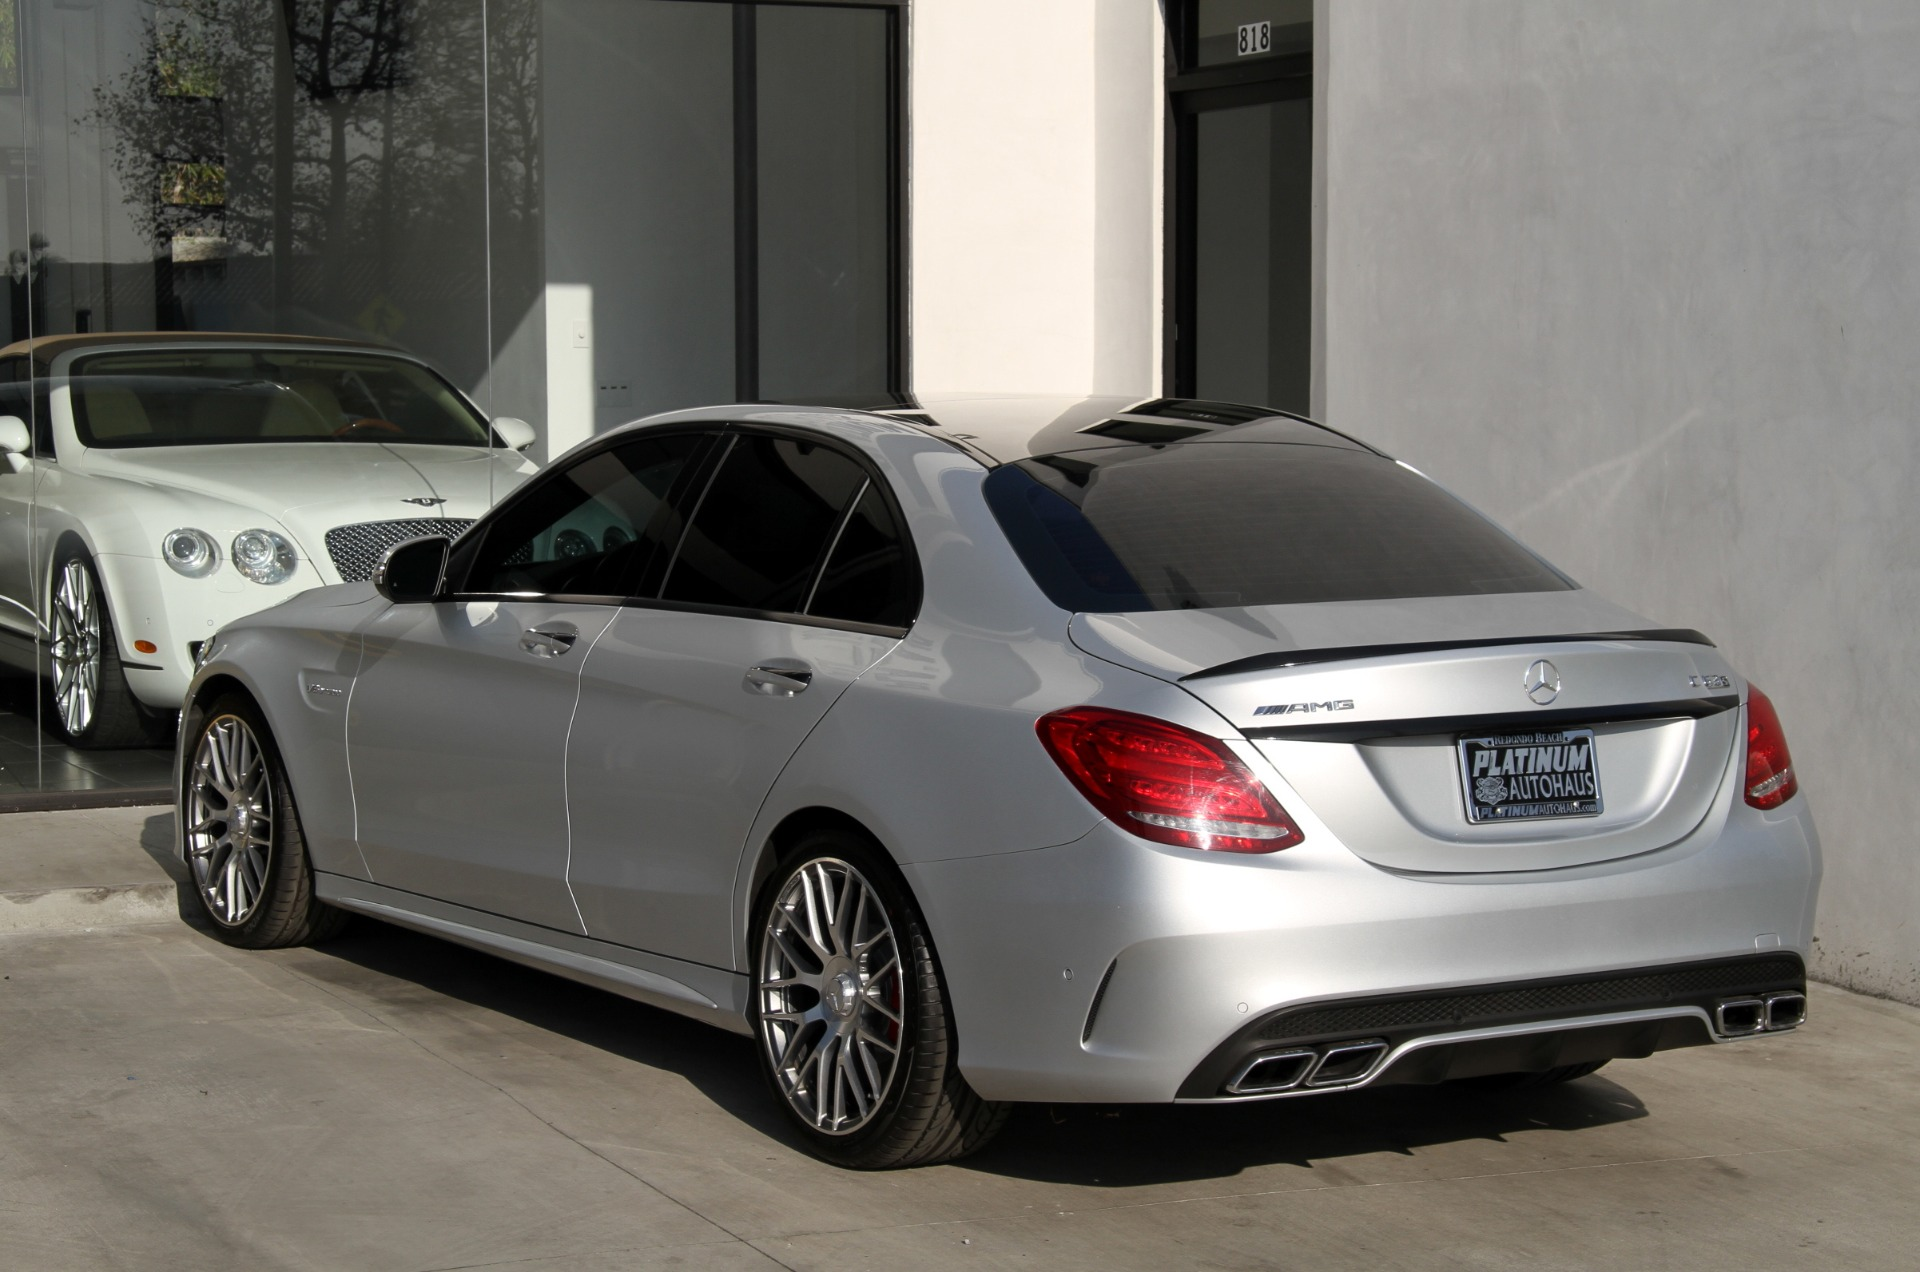 2016 mercedes benz c63 s amg stock 6004 for sale near. Black Bedroom Furniture Sets. Home Design Ideas